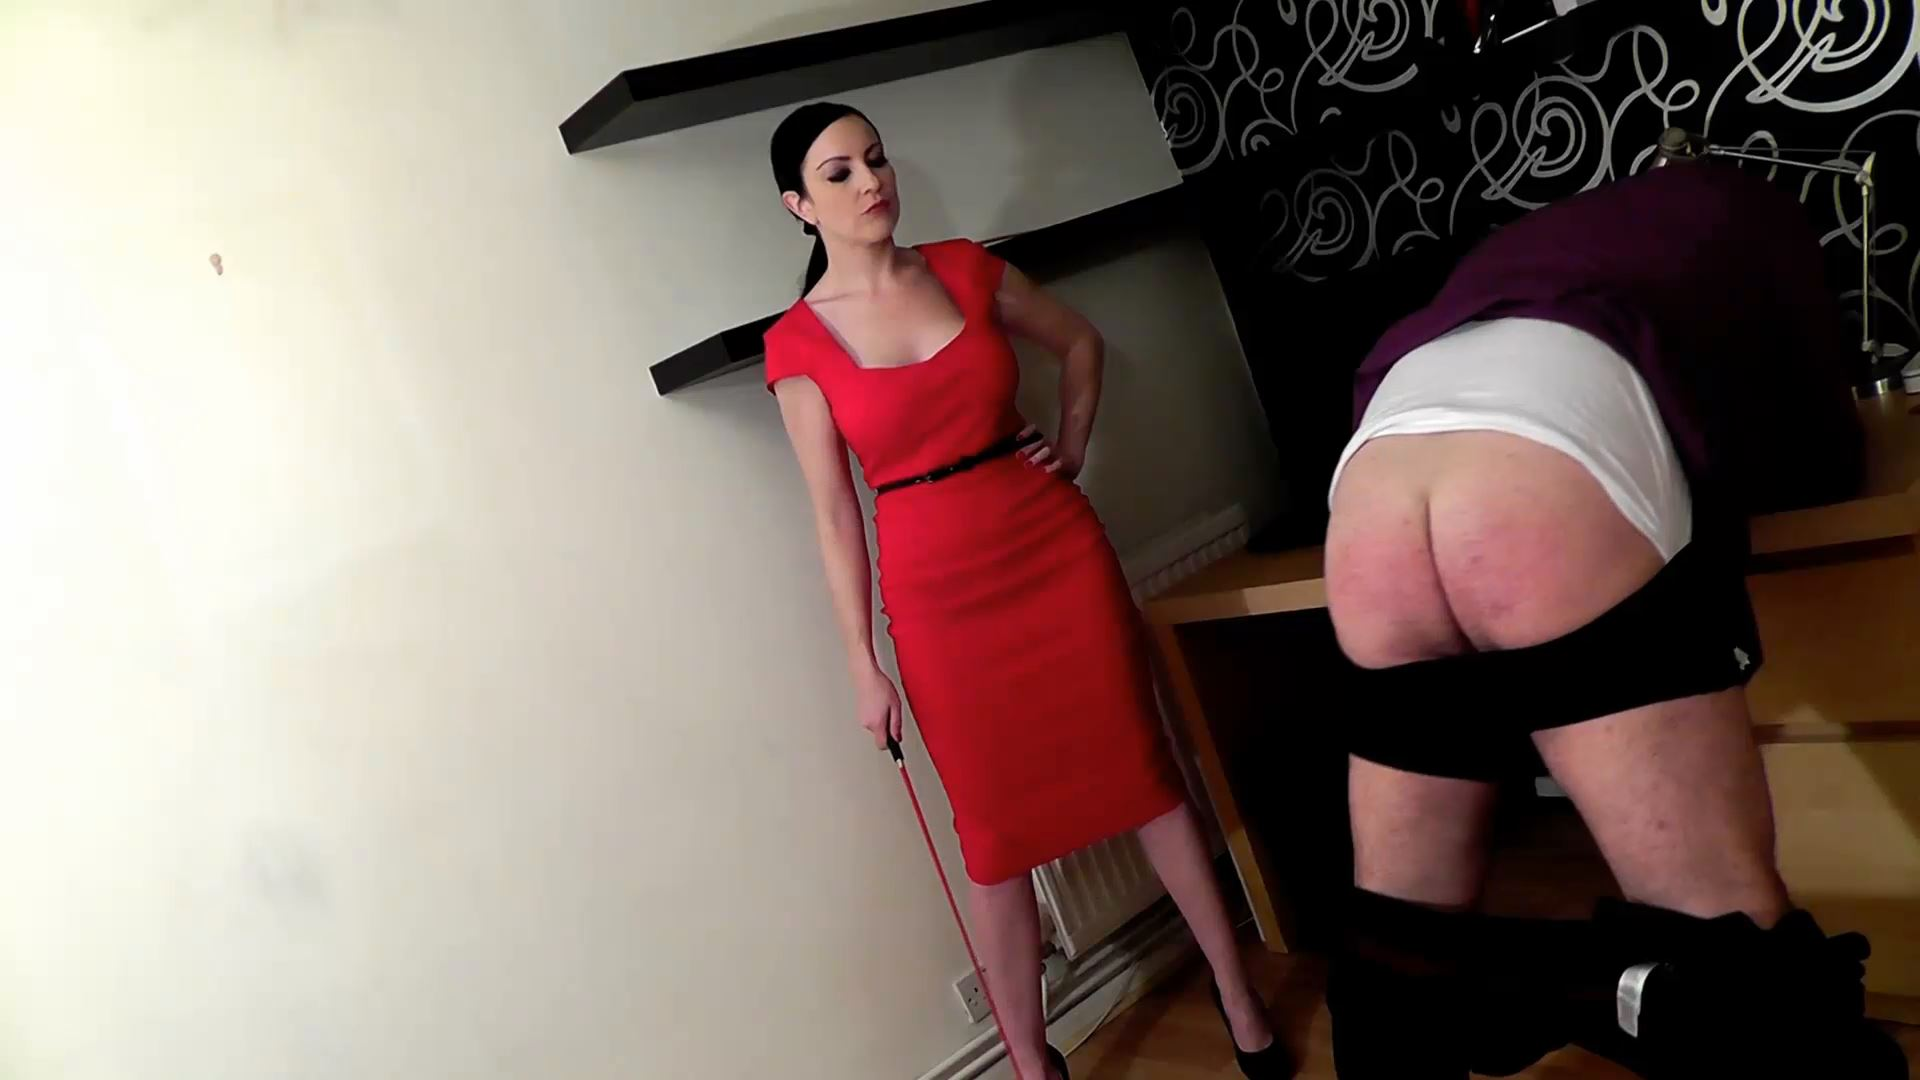 Jessica Wood In Scene: Colleague's work - MISSJESSICAWOODVIDEOS - FULL HD/1080p/MP4